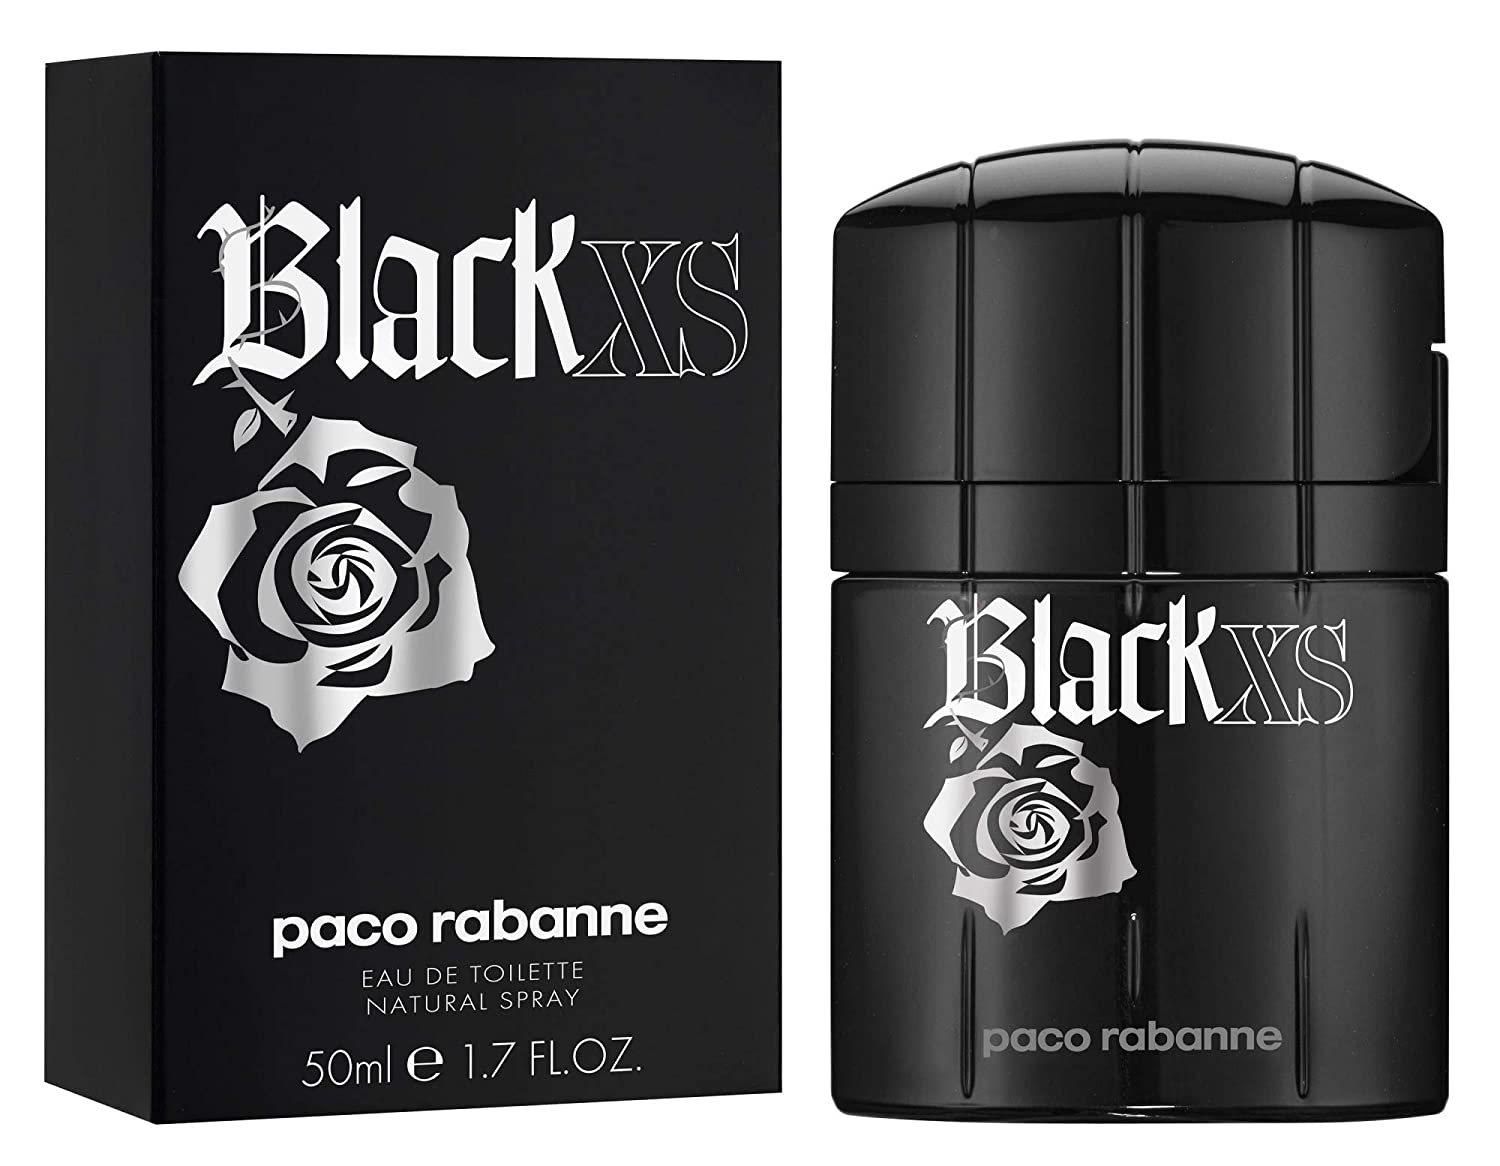 Paco Rabanne Black Xs Eau De Toilette Spray 50ml 1 7oz Beauty